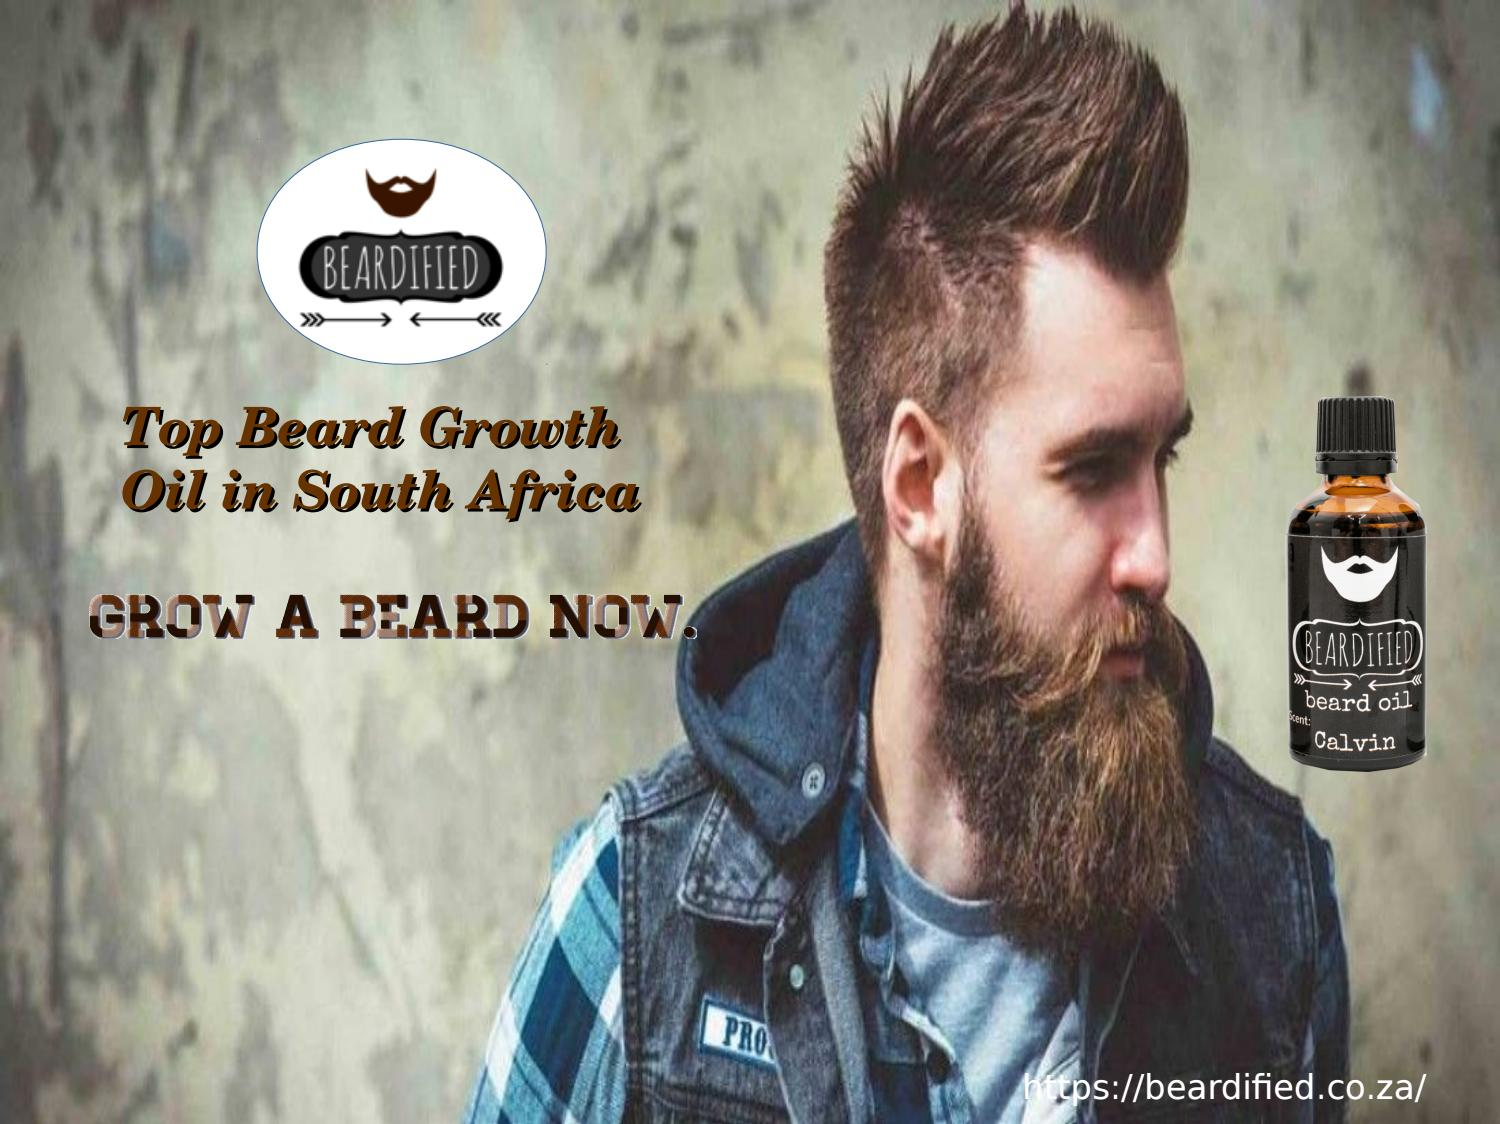 Top Beard Growth Products Online In Cape Town South Africa By Beardified Issuu